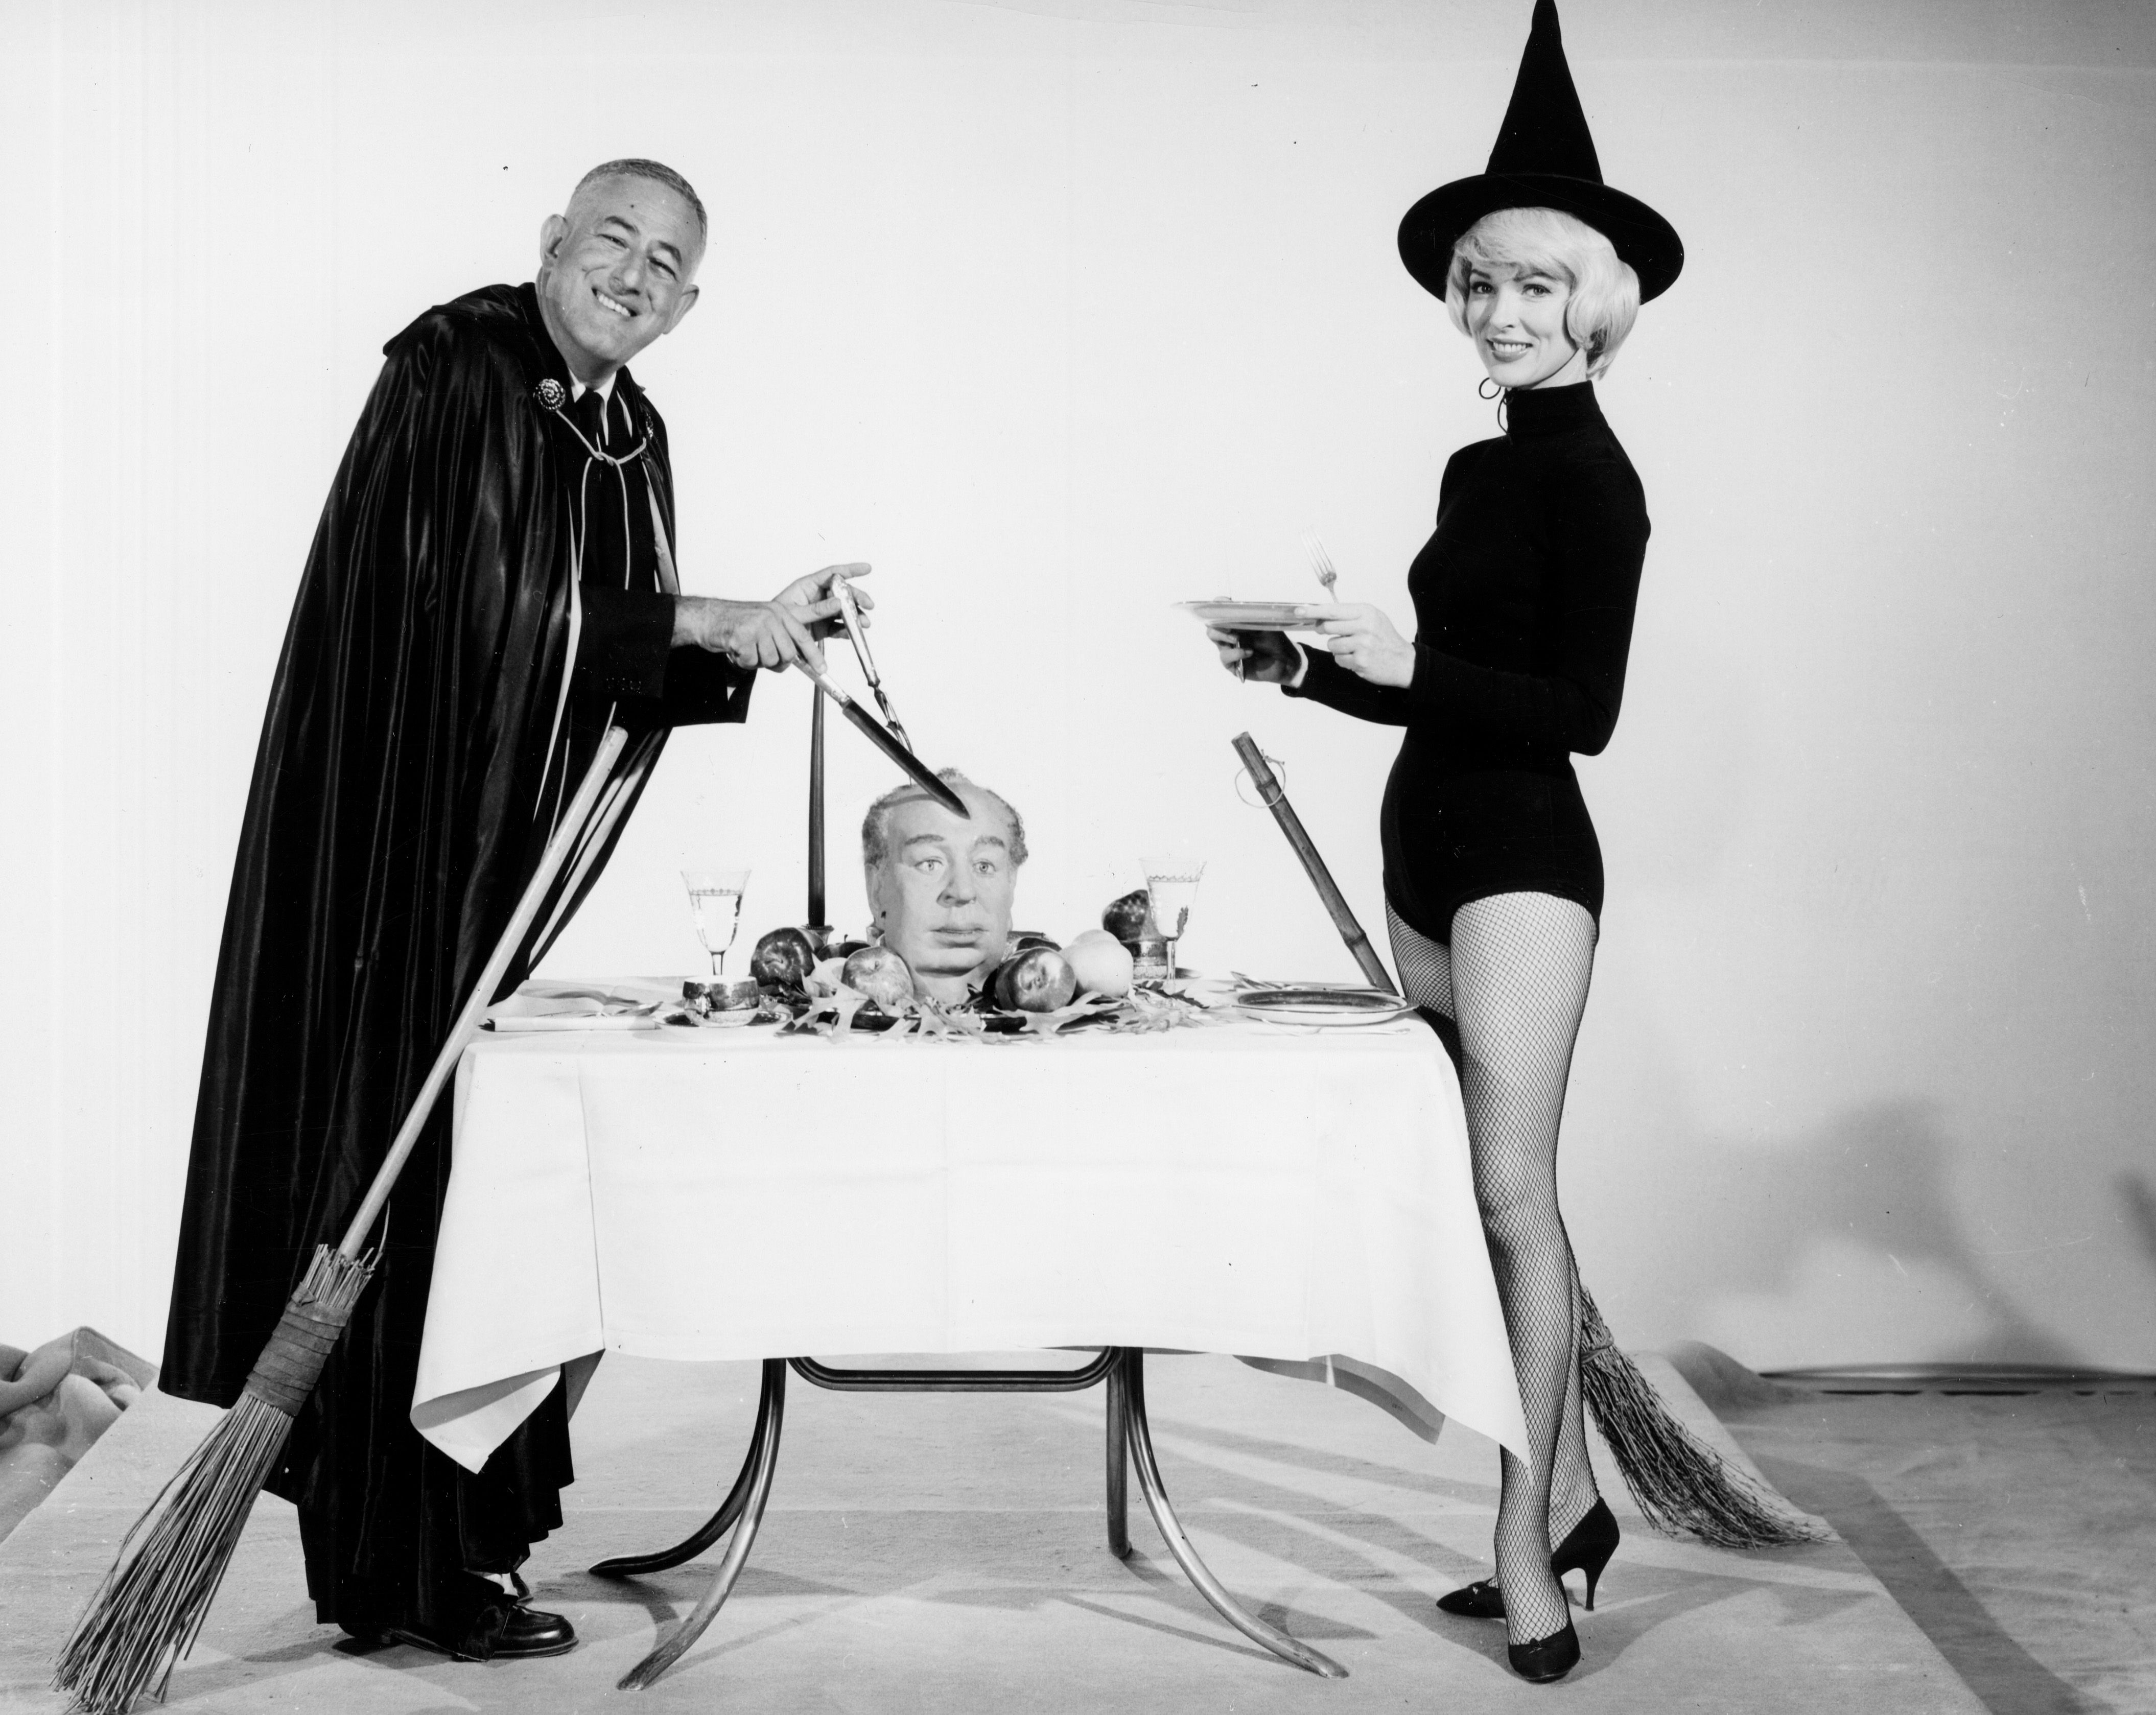 Promotional photo of film director William Castle accompanied by a witch.